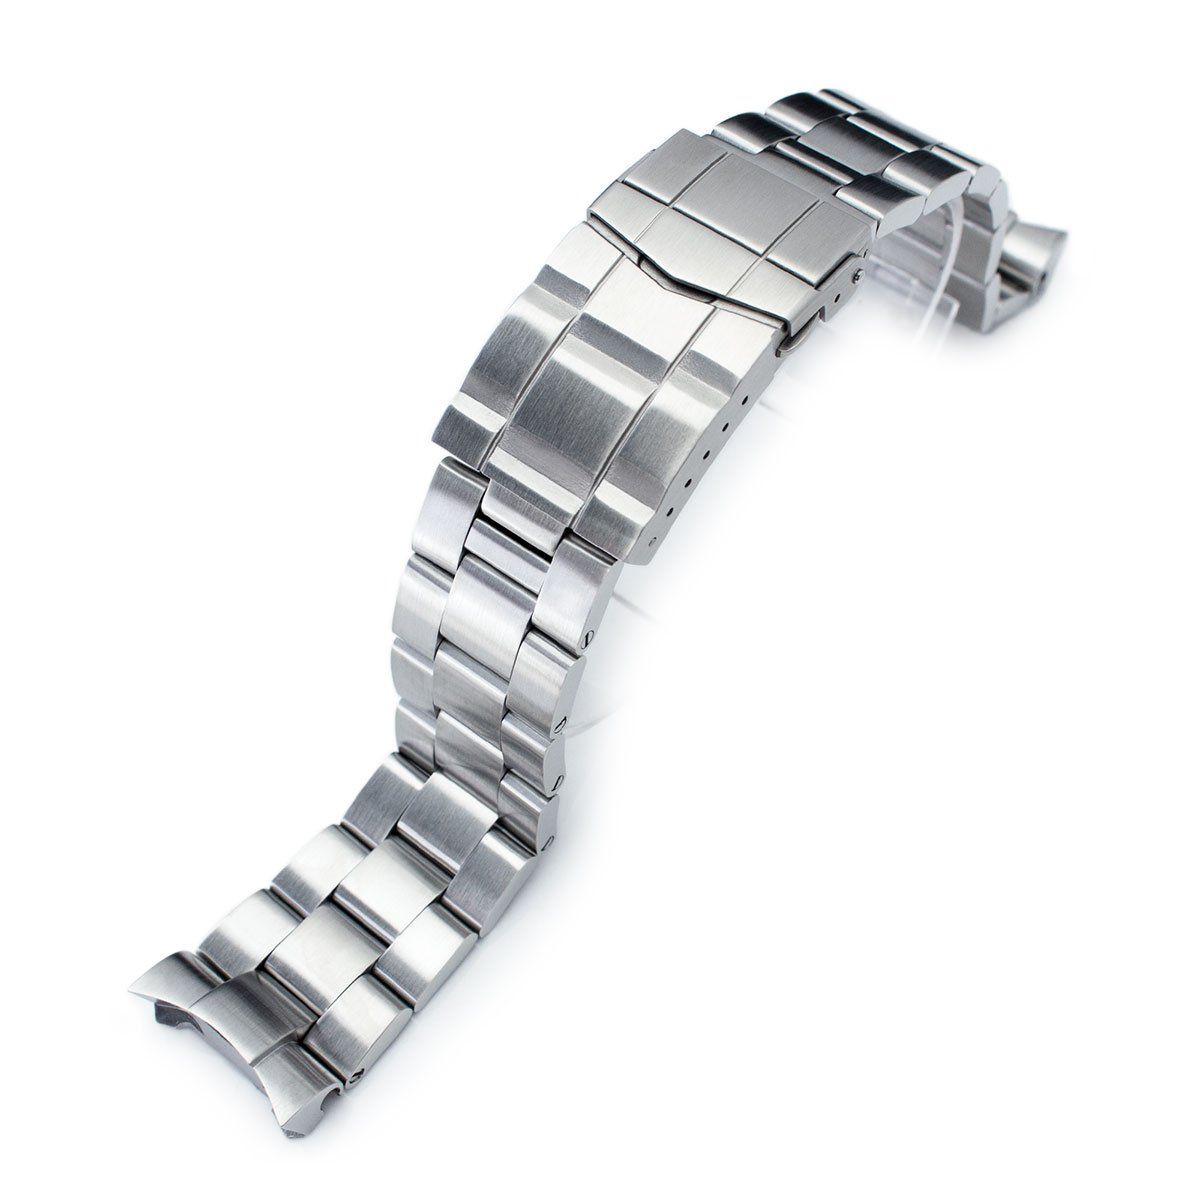 22mm Super 3D Oyster watch band for SEIKO Diver SKX007/009/011, Solid Submariner Clasp